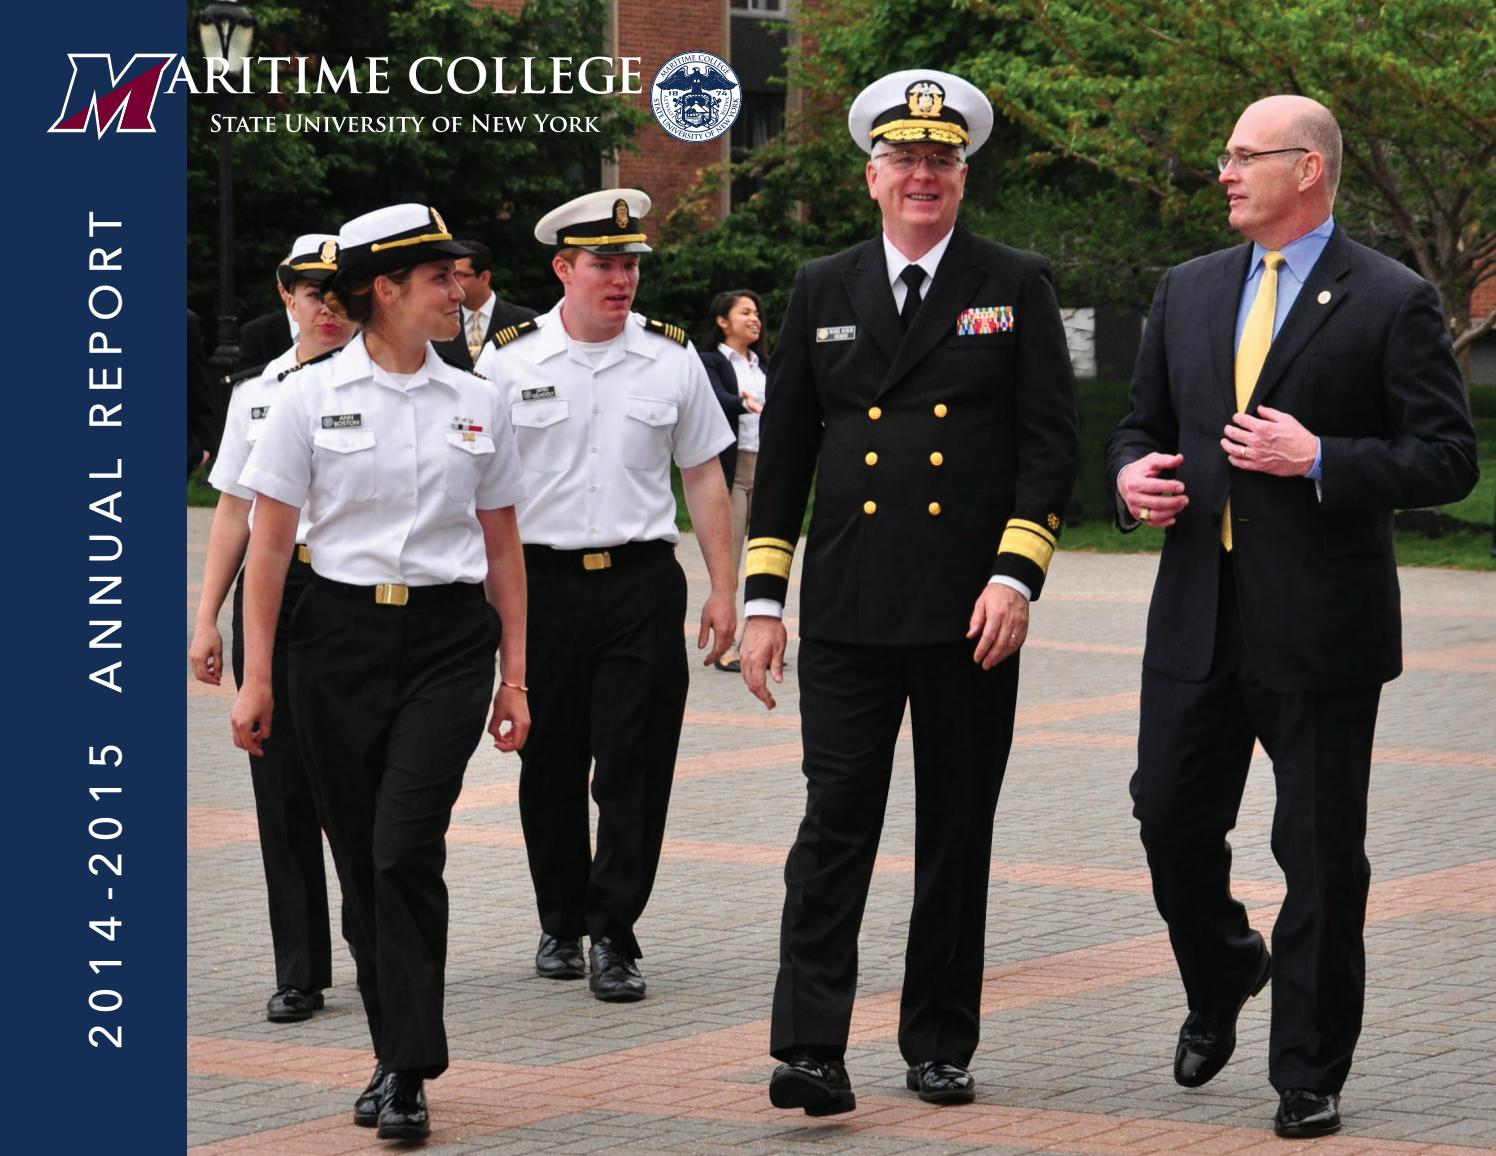 Annualreport2014 2015 By Suny Maritime College Issuu Ttec4841 Electrical Corey Leonard April 2011